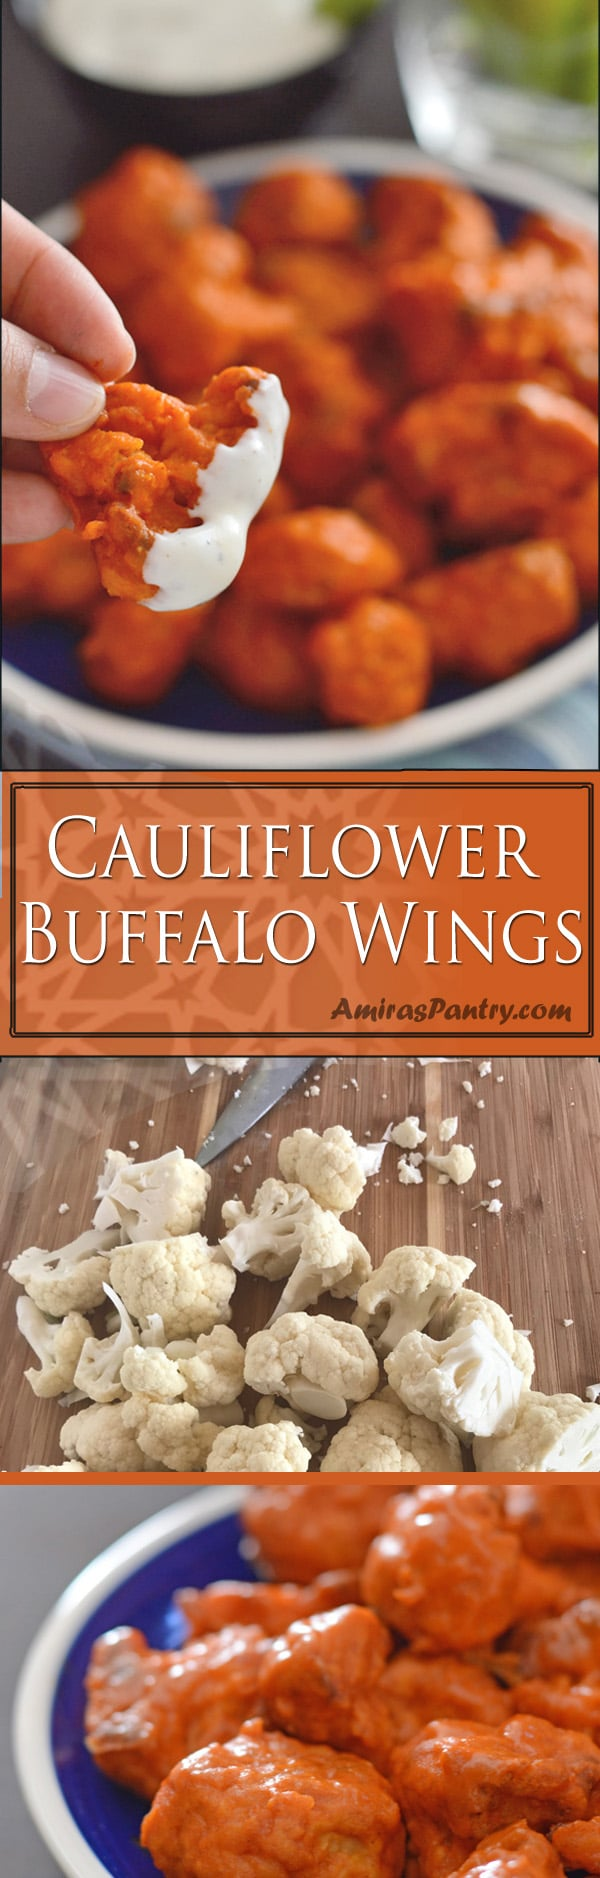 Crispy cauliflower buffalo wings recipe, this is not a false statement. These buffalo style cauliflower bites are truly SERIOUSLY crispy. A healthier alternative to the traditional buffalo wings.